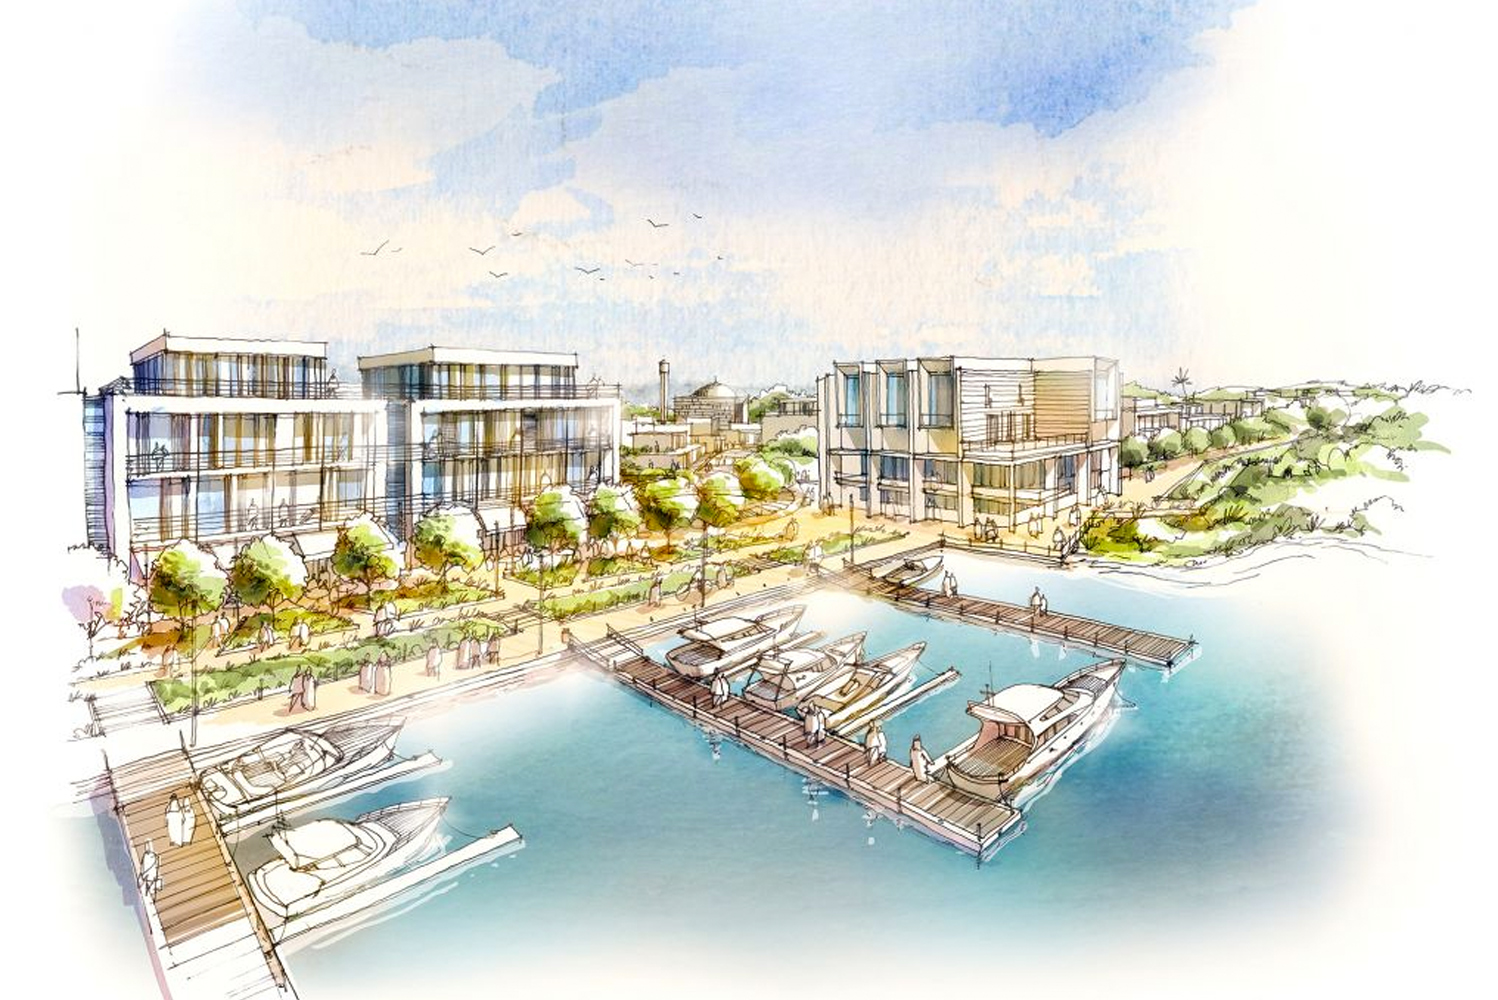 Jubail, an island located between Saadiyat Island and Yas Island to the north west of downtown Abu Dhabi, is set to be transformed by Jubail Island Investment Company (JIIC) in a £1 billion project.